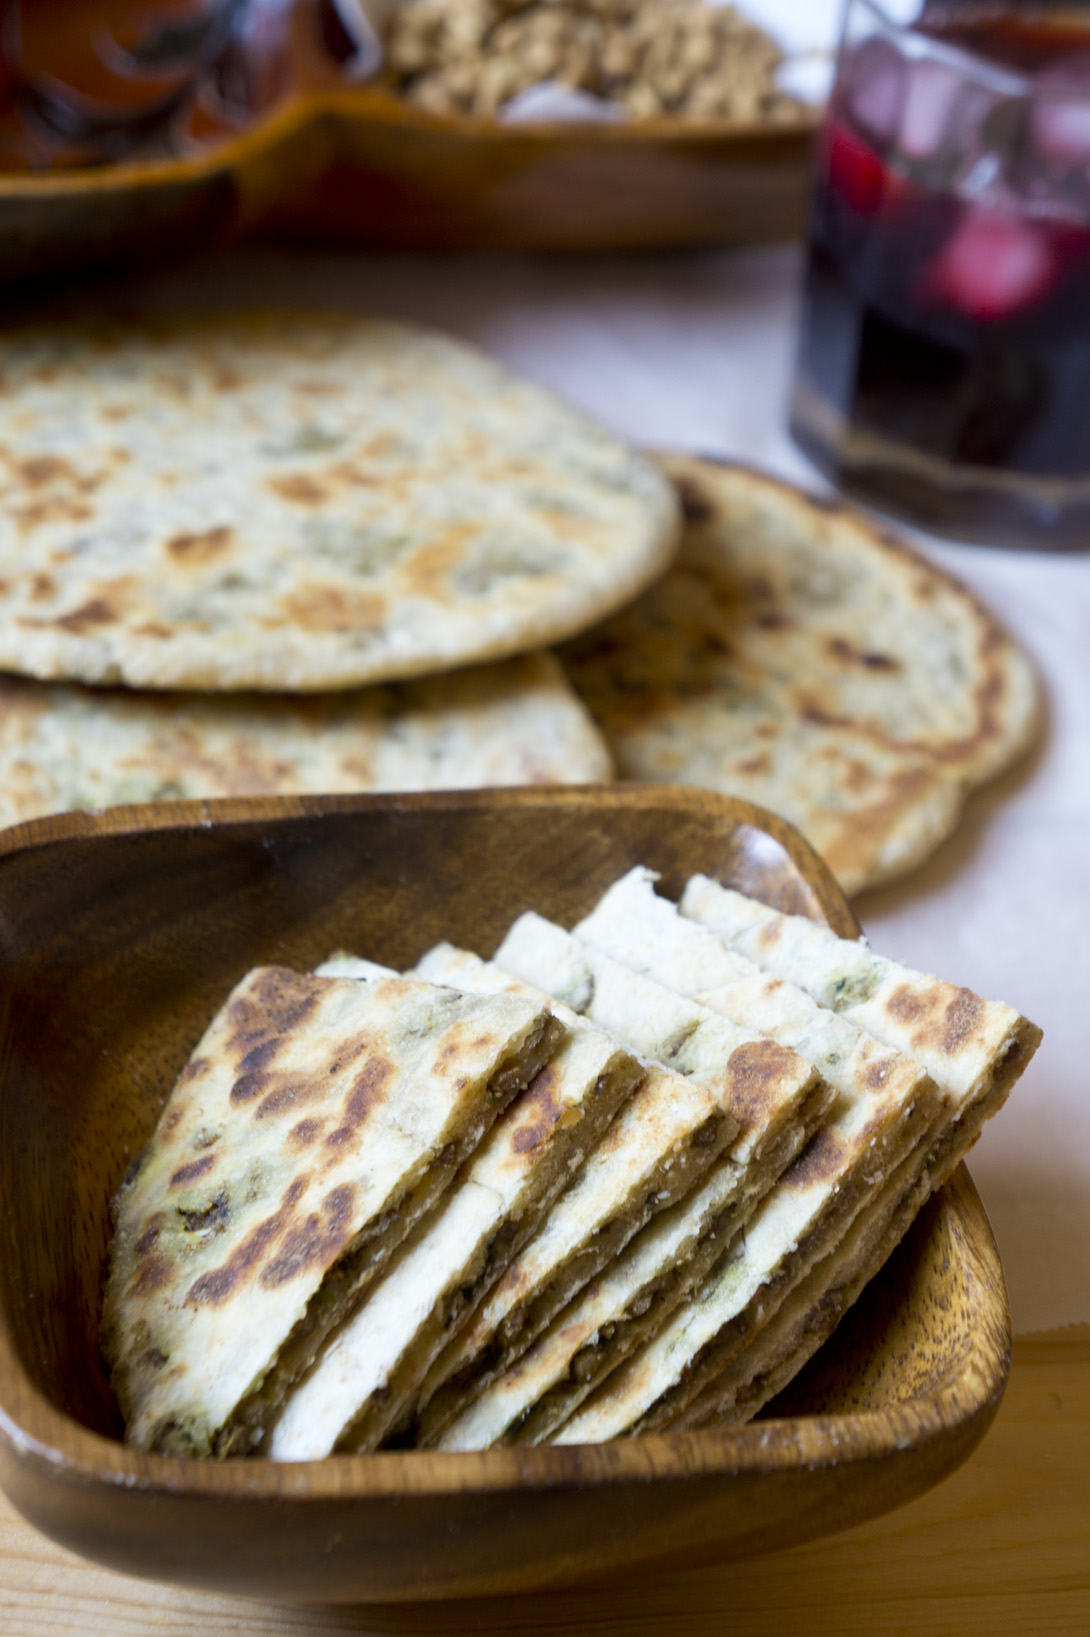 Keema Chapatis from East Africa